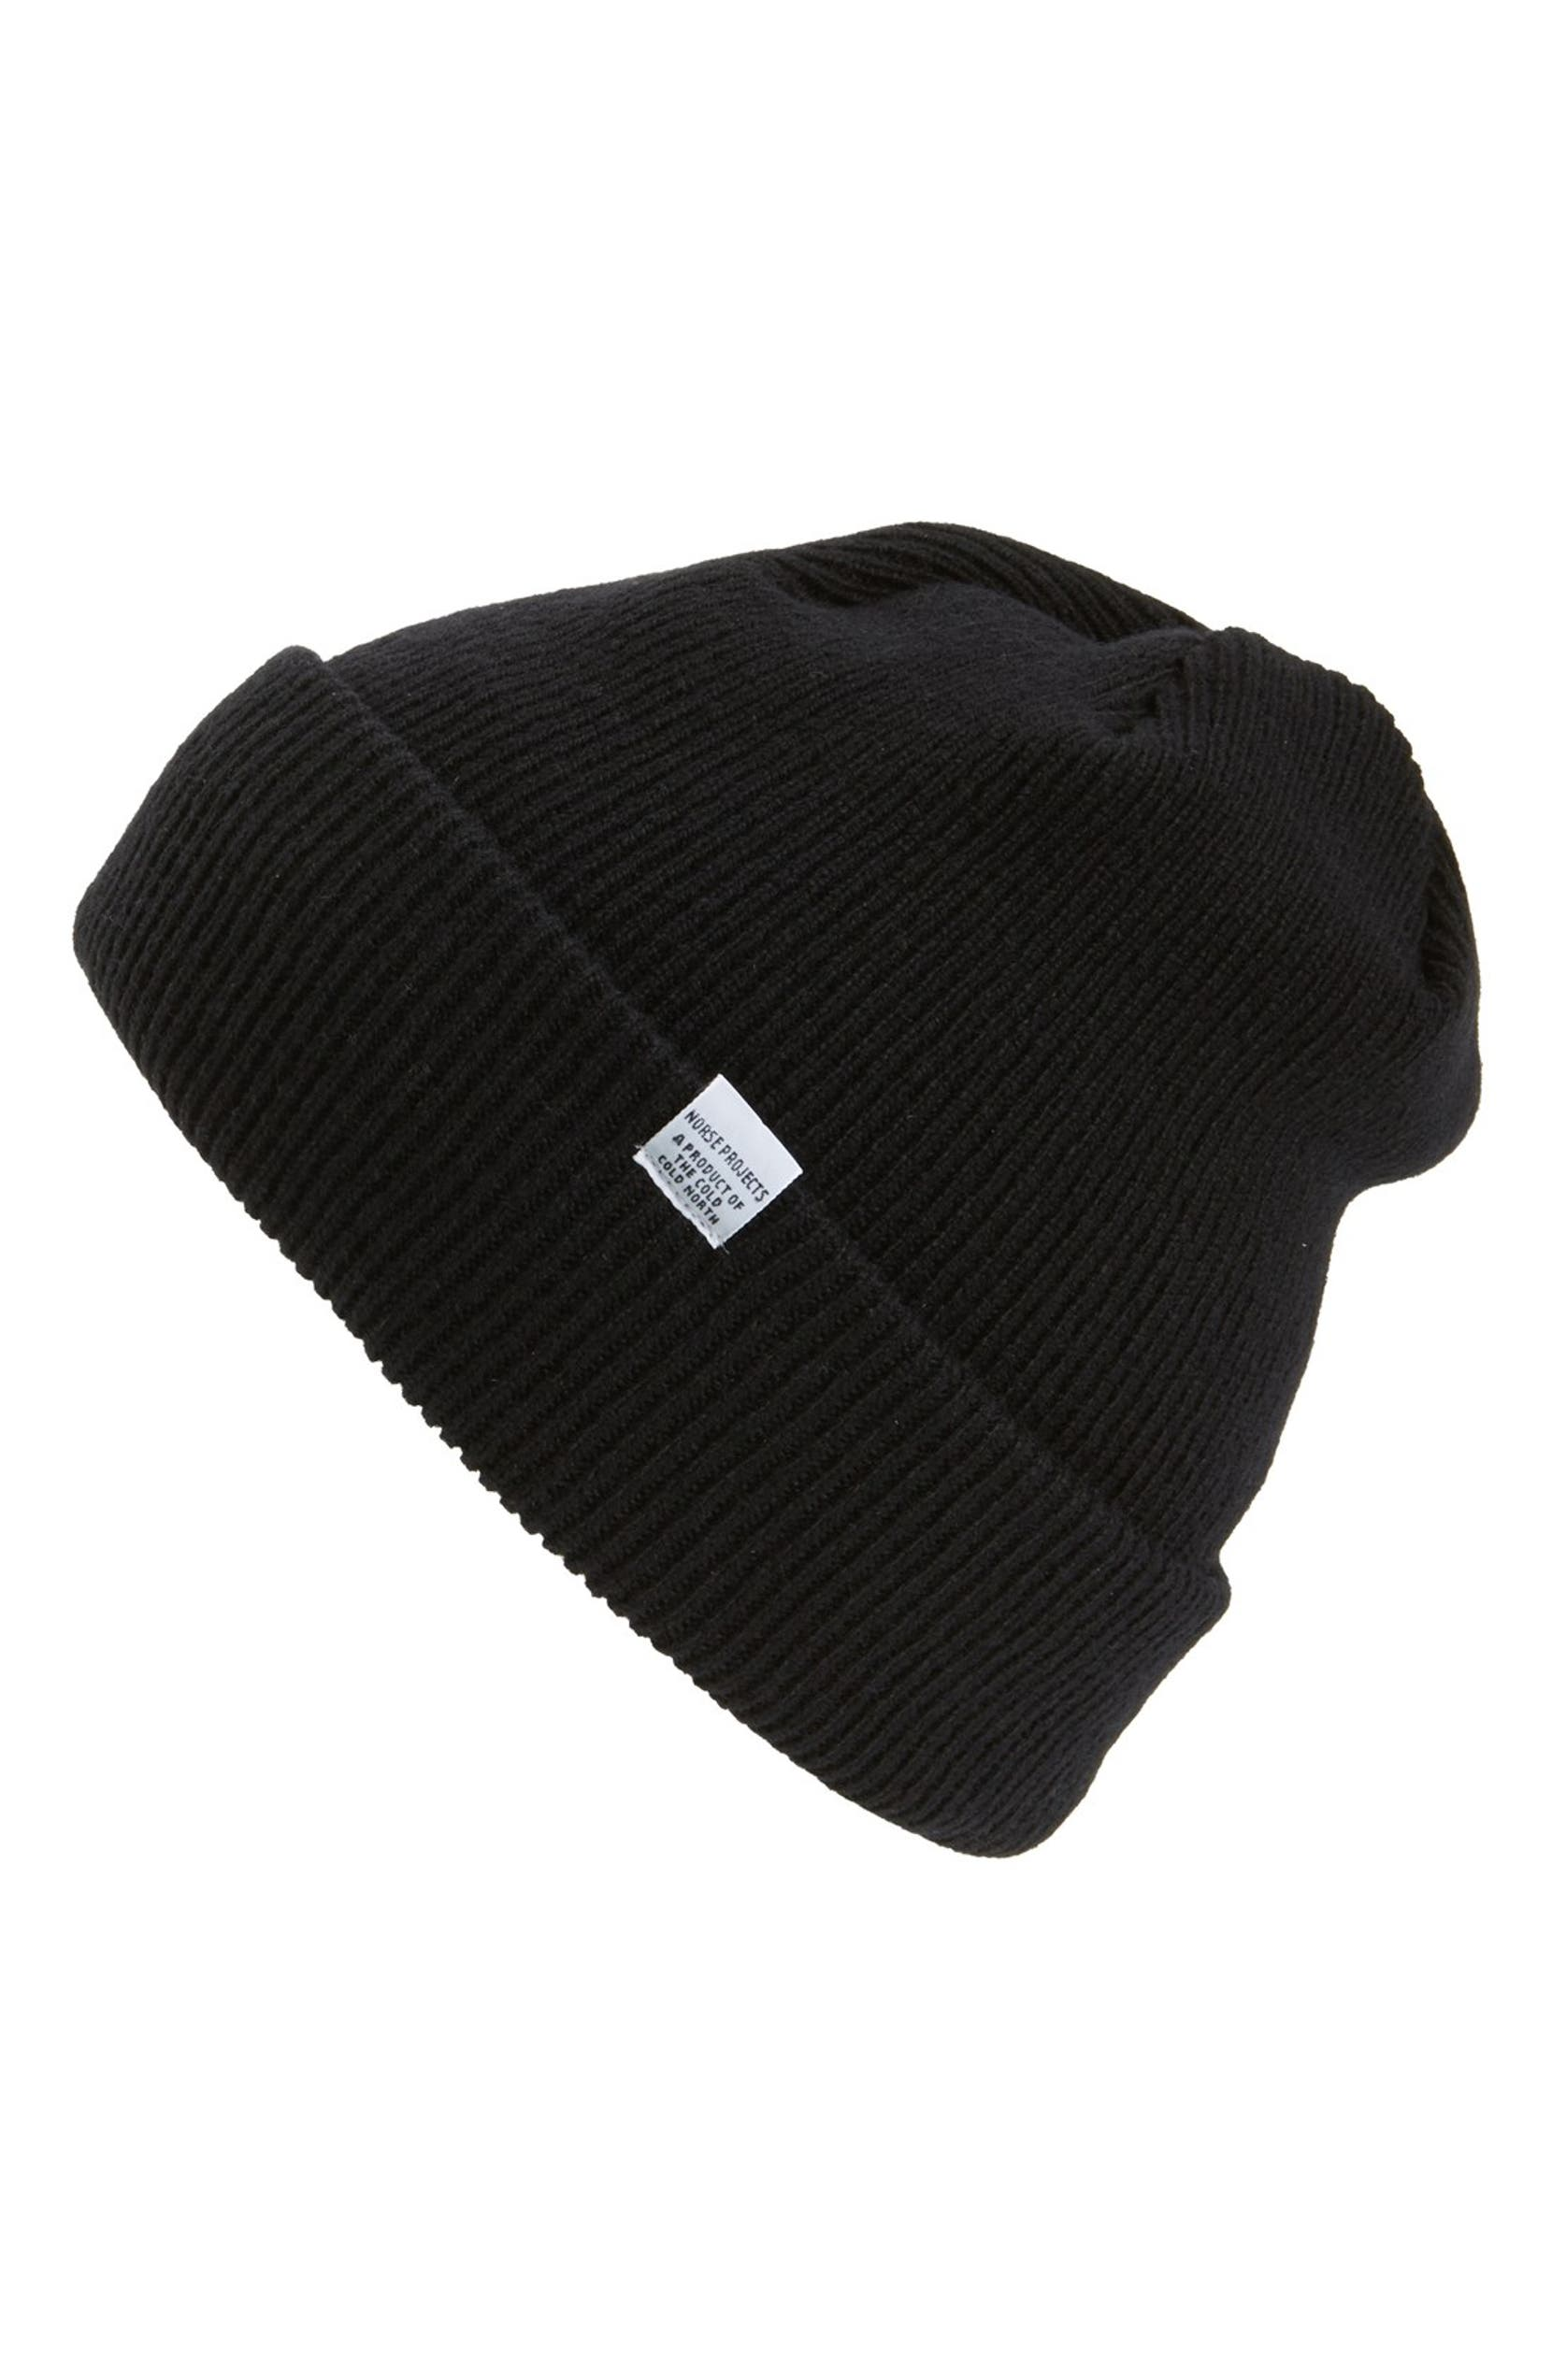 5466791a24f Norse Projects Merino Wool Beanie